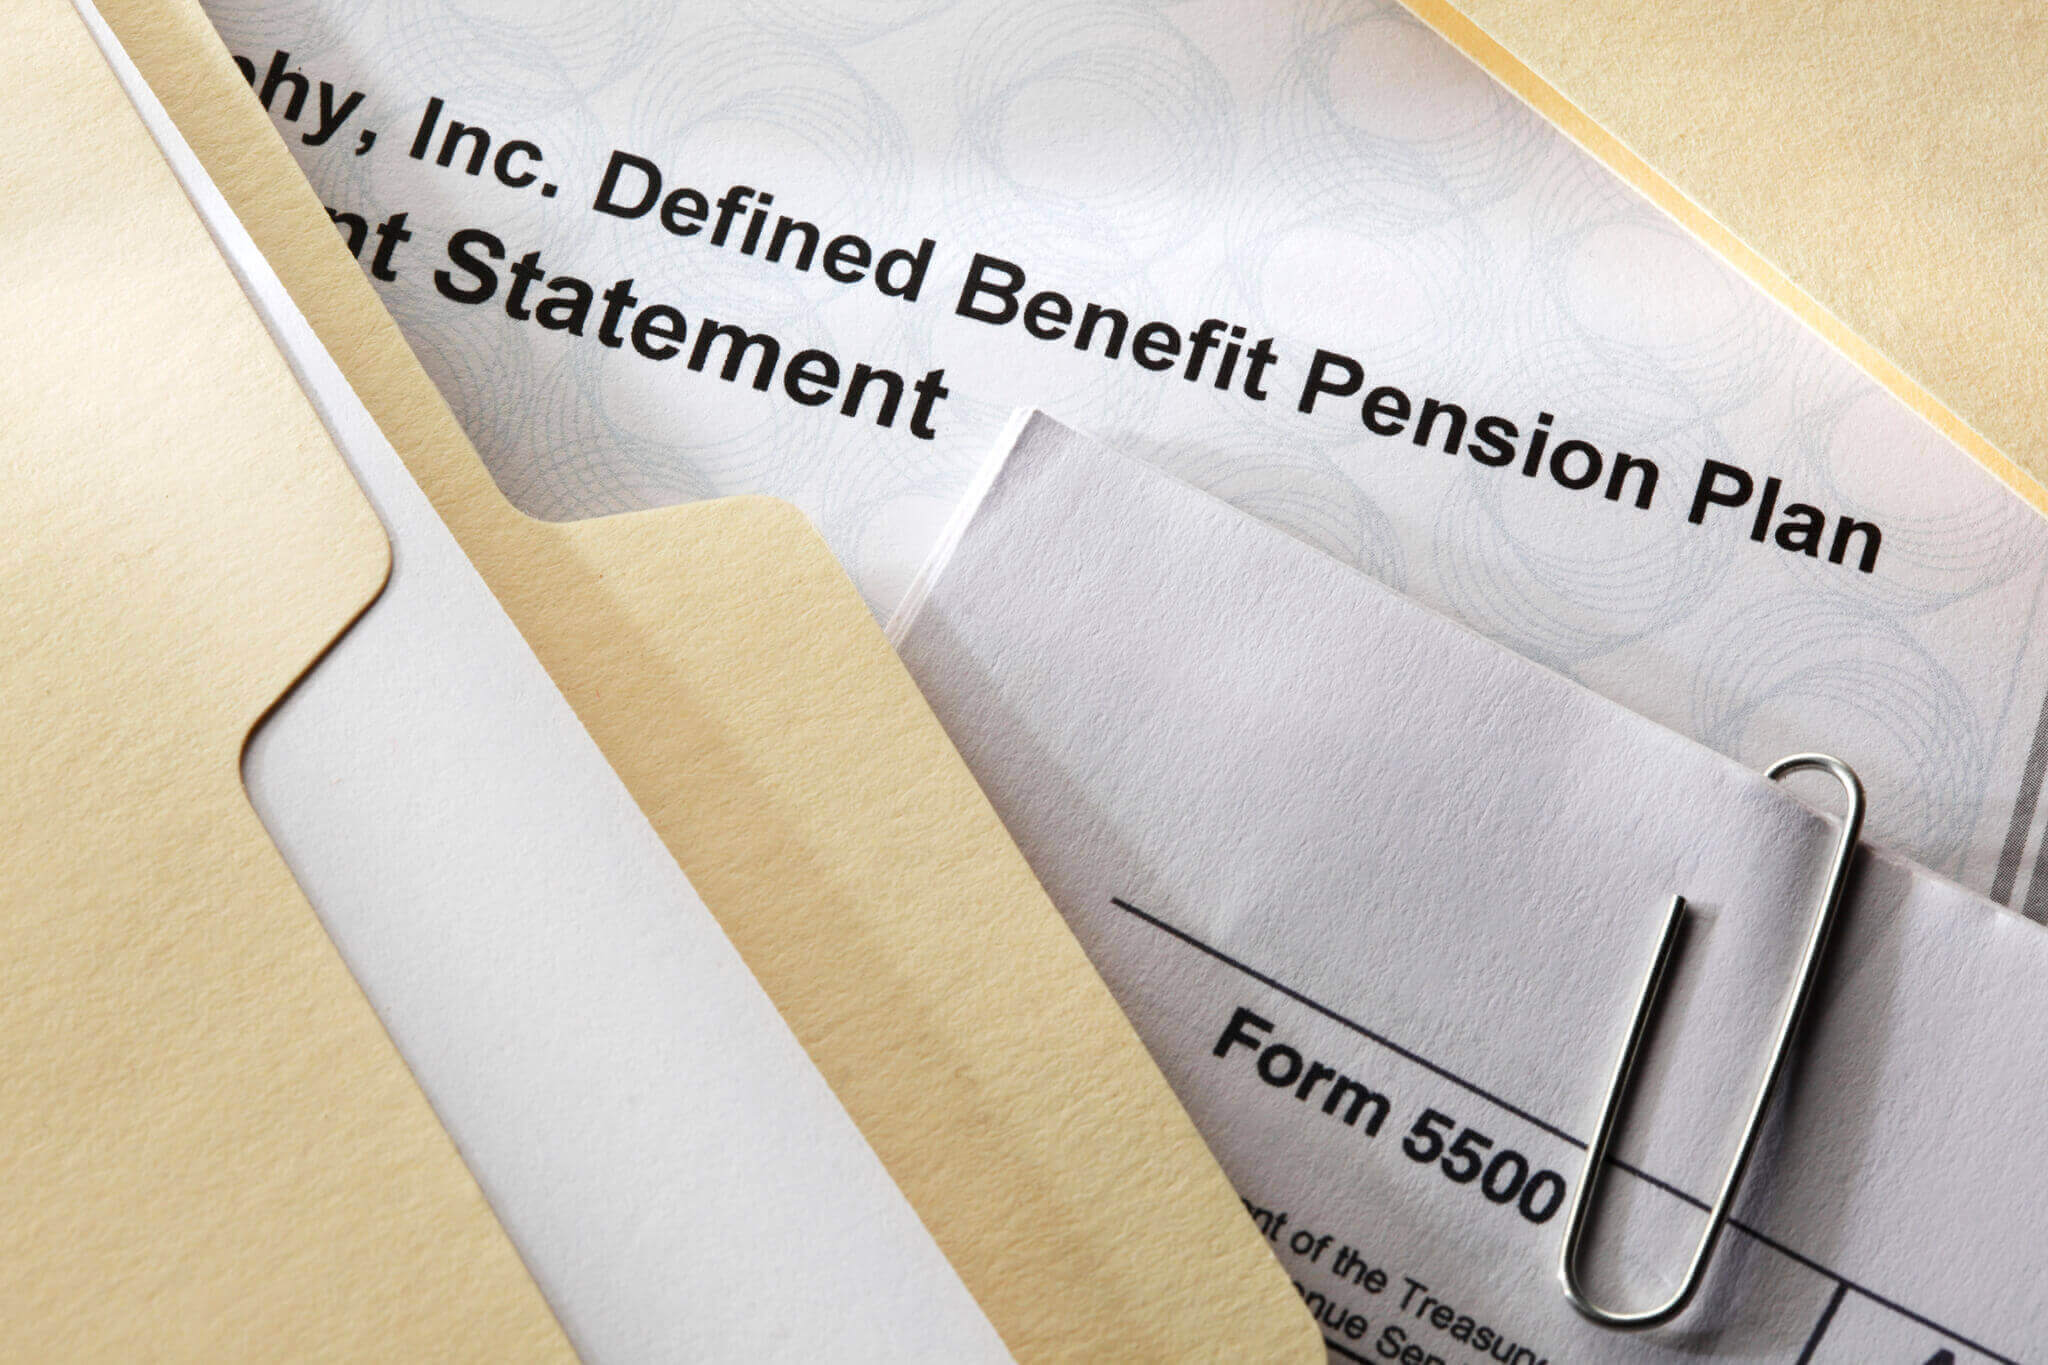 Defined benefit documents